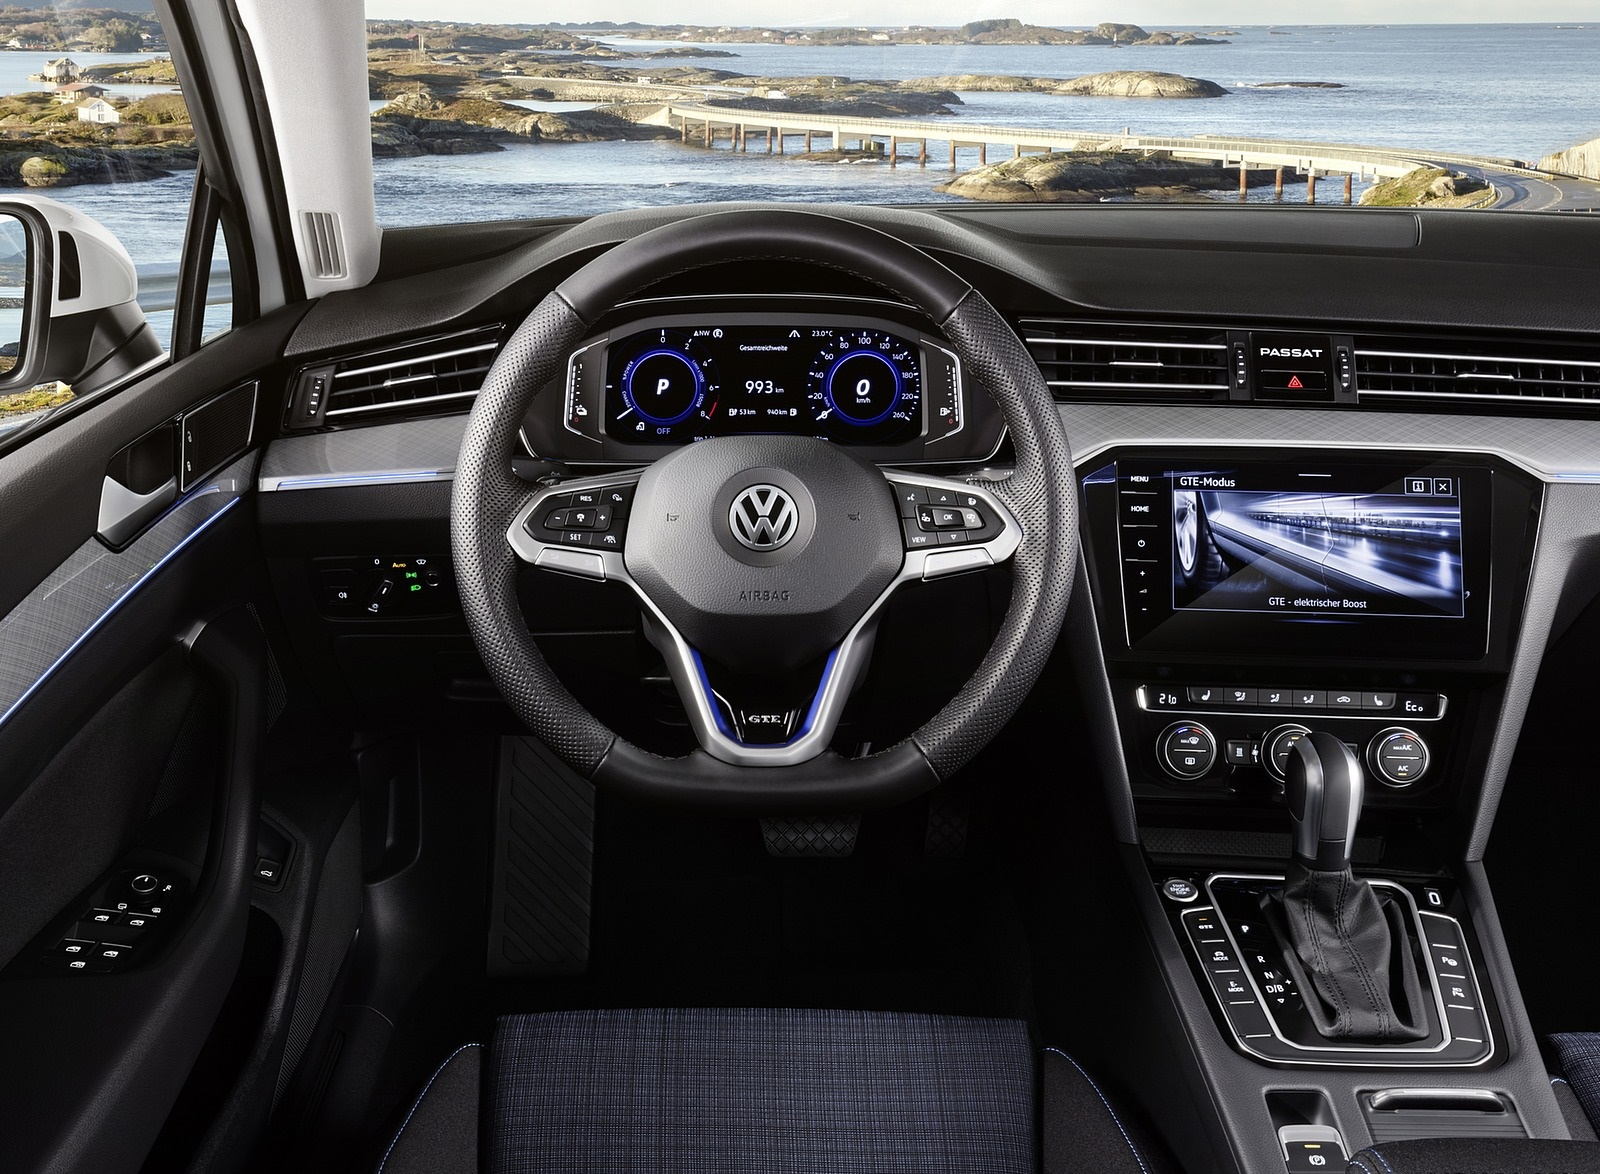 2020 Volkswagen Passat GTE (EU-Spec) Interior Cockpit Wallpapers (14)